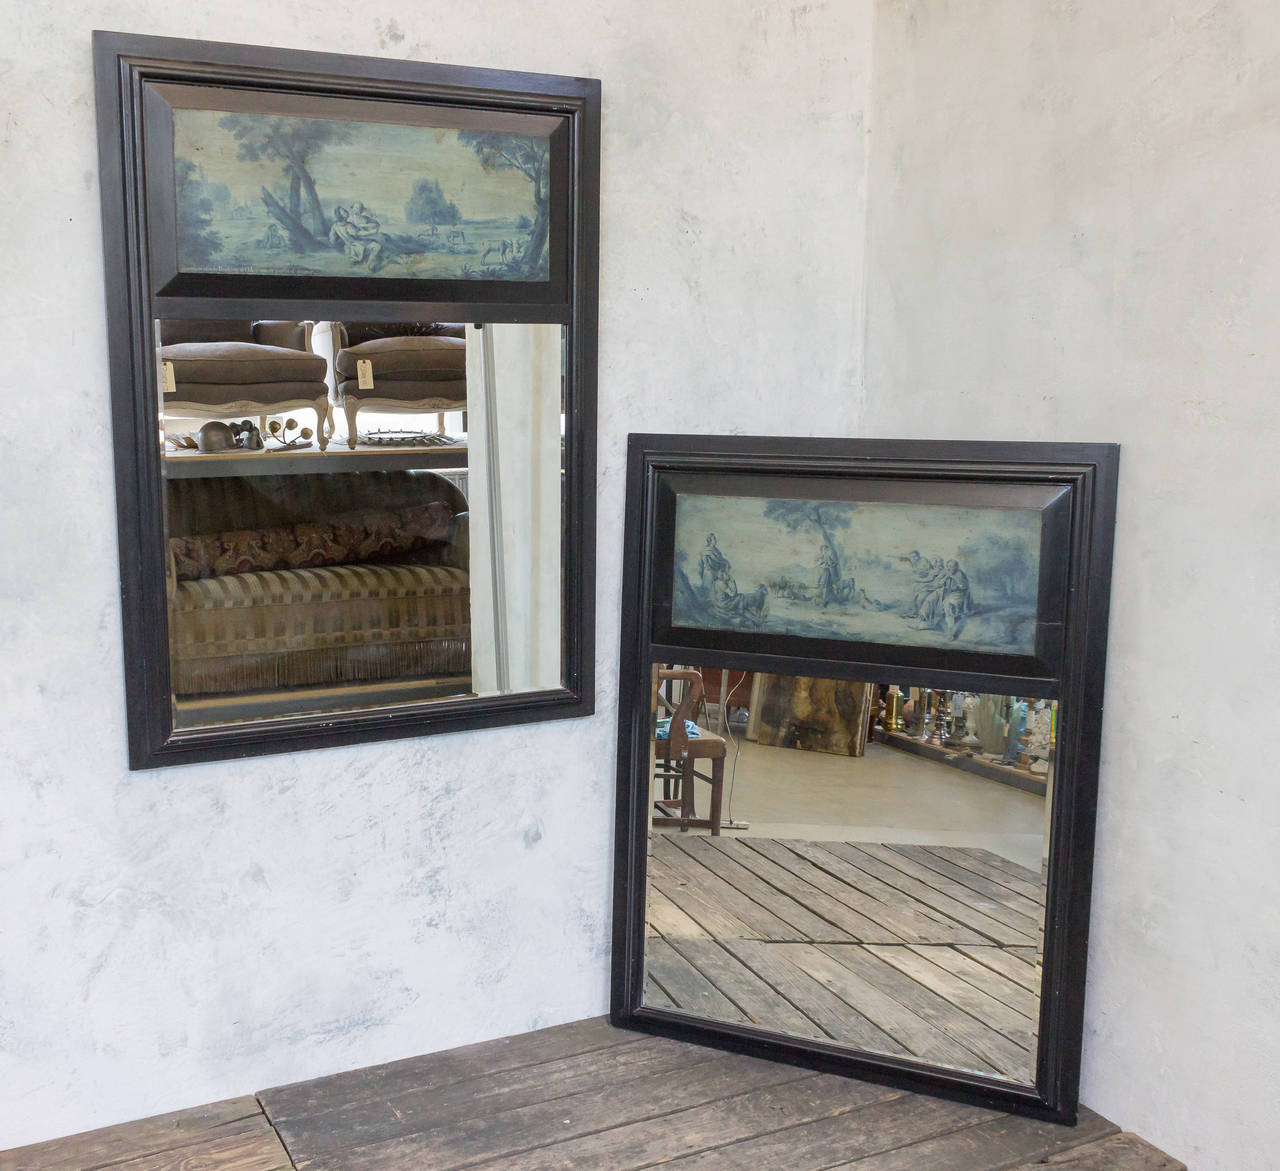 Pair of French 19th century trumeau mirror with ebonized carved wooden frame. There are blue tone paintings of French country life. The mirrors are beveled.